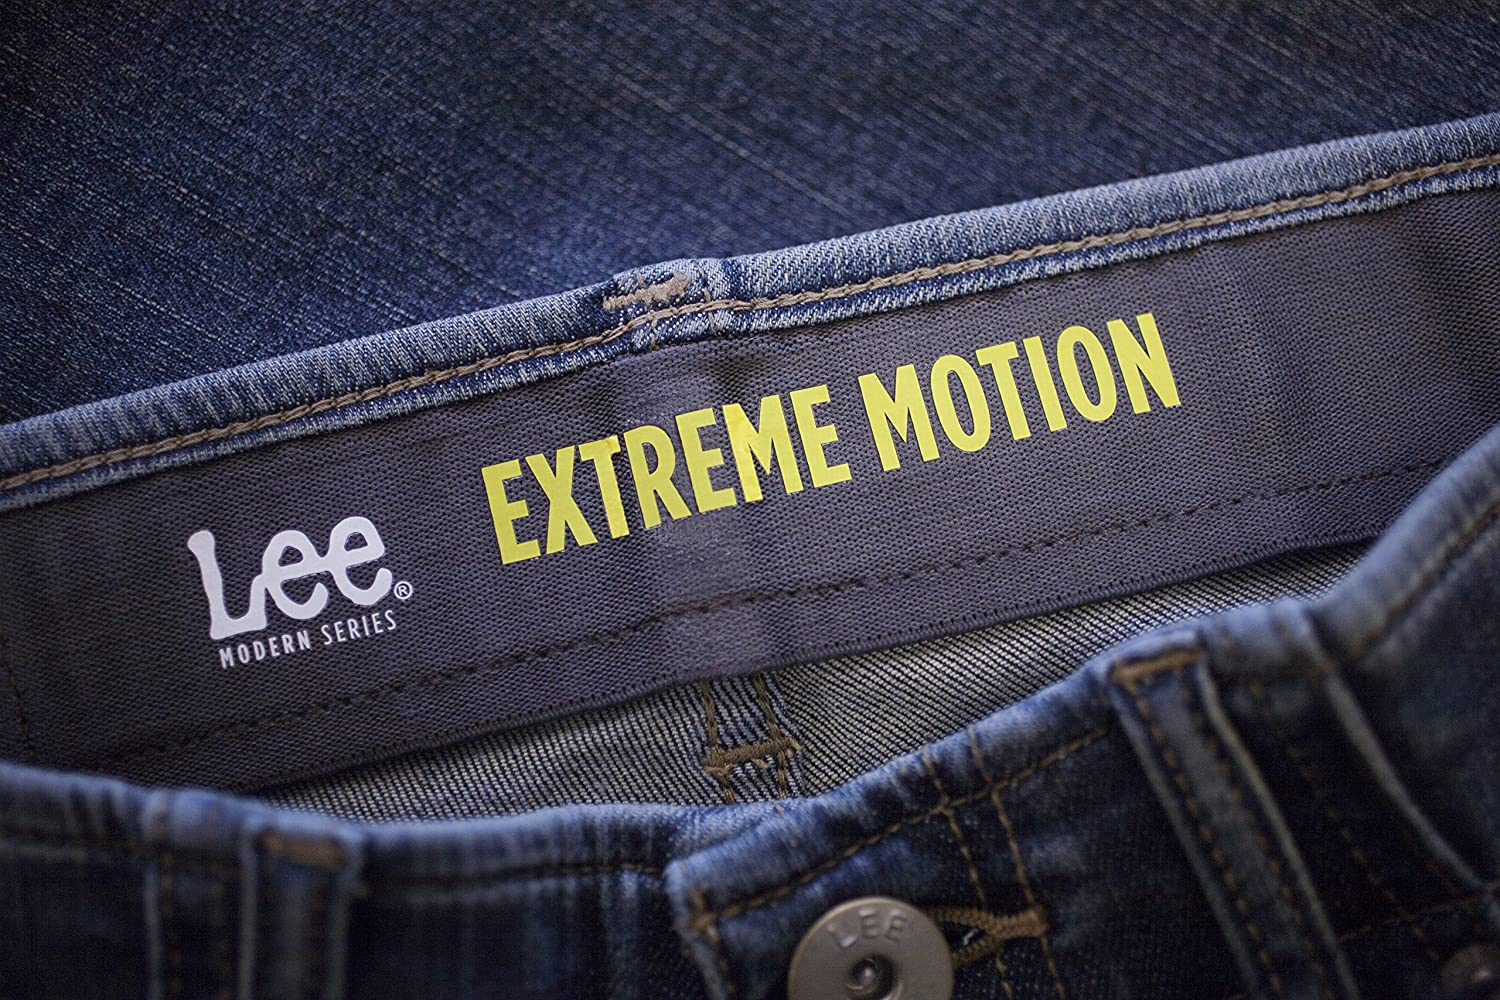 Lee Modern Series Extreme Motion Athletic Jean Homme Bradford.